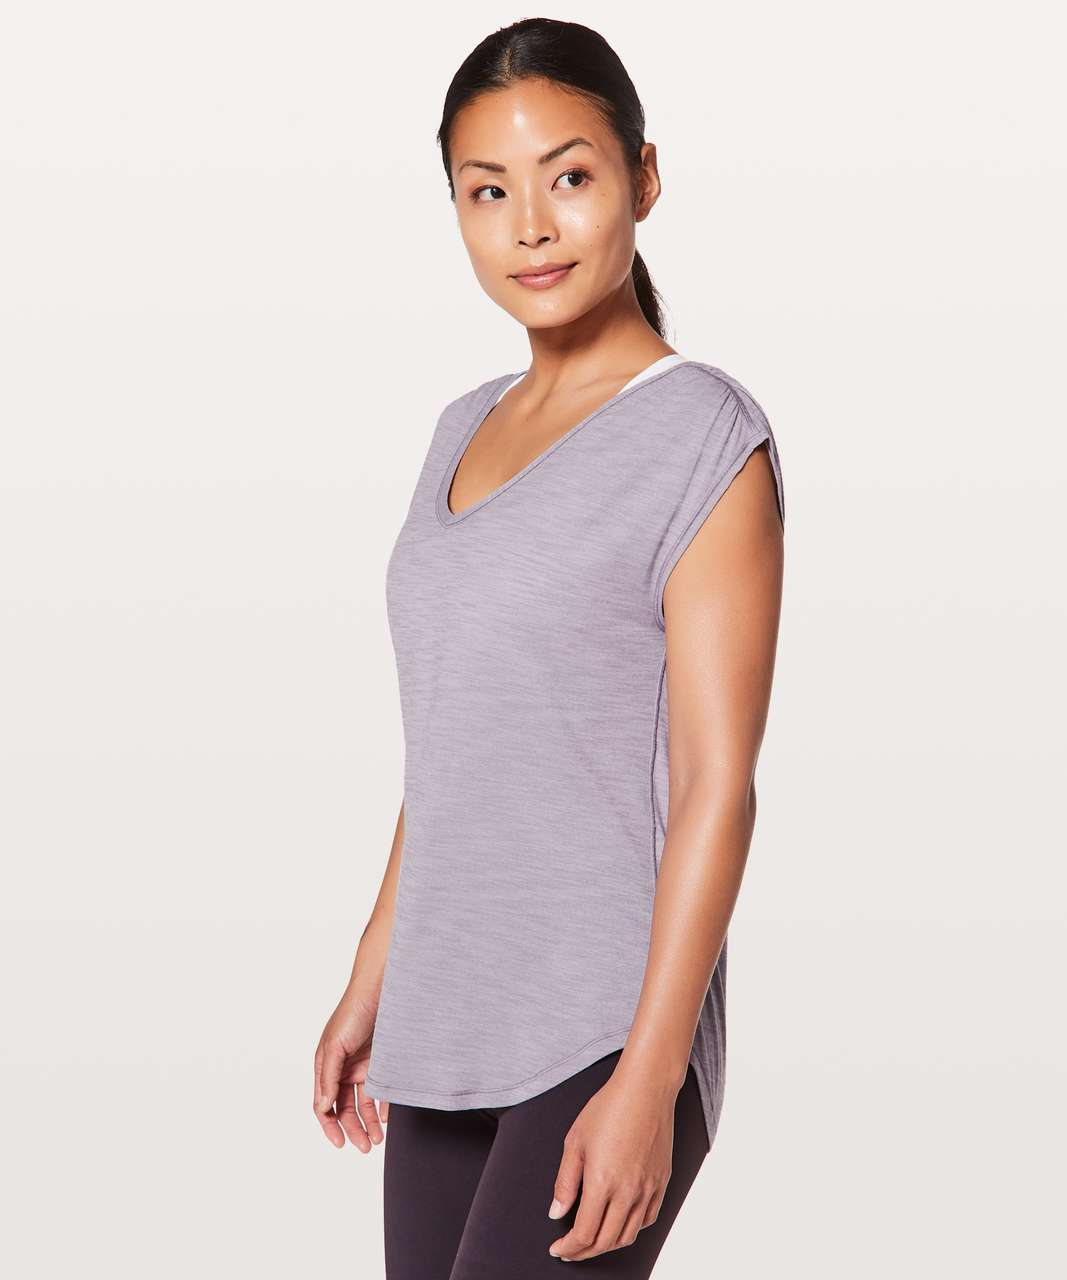 Lululemon Sweat Times Short Sleeve - Heathered Dusty Dawn